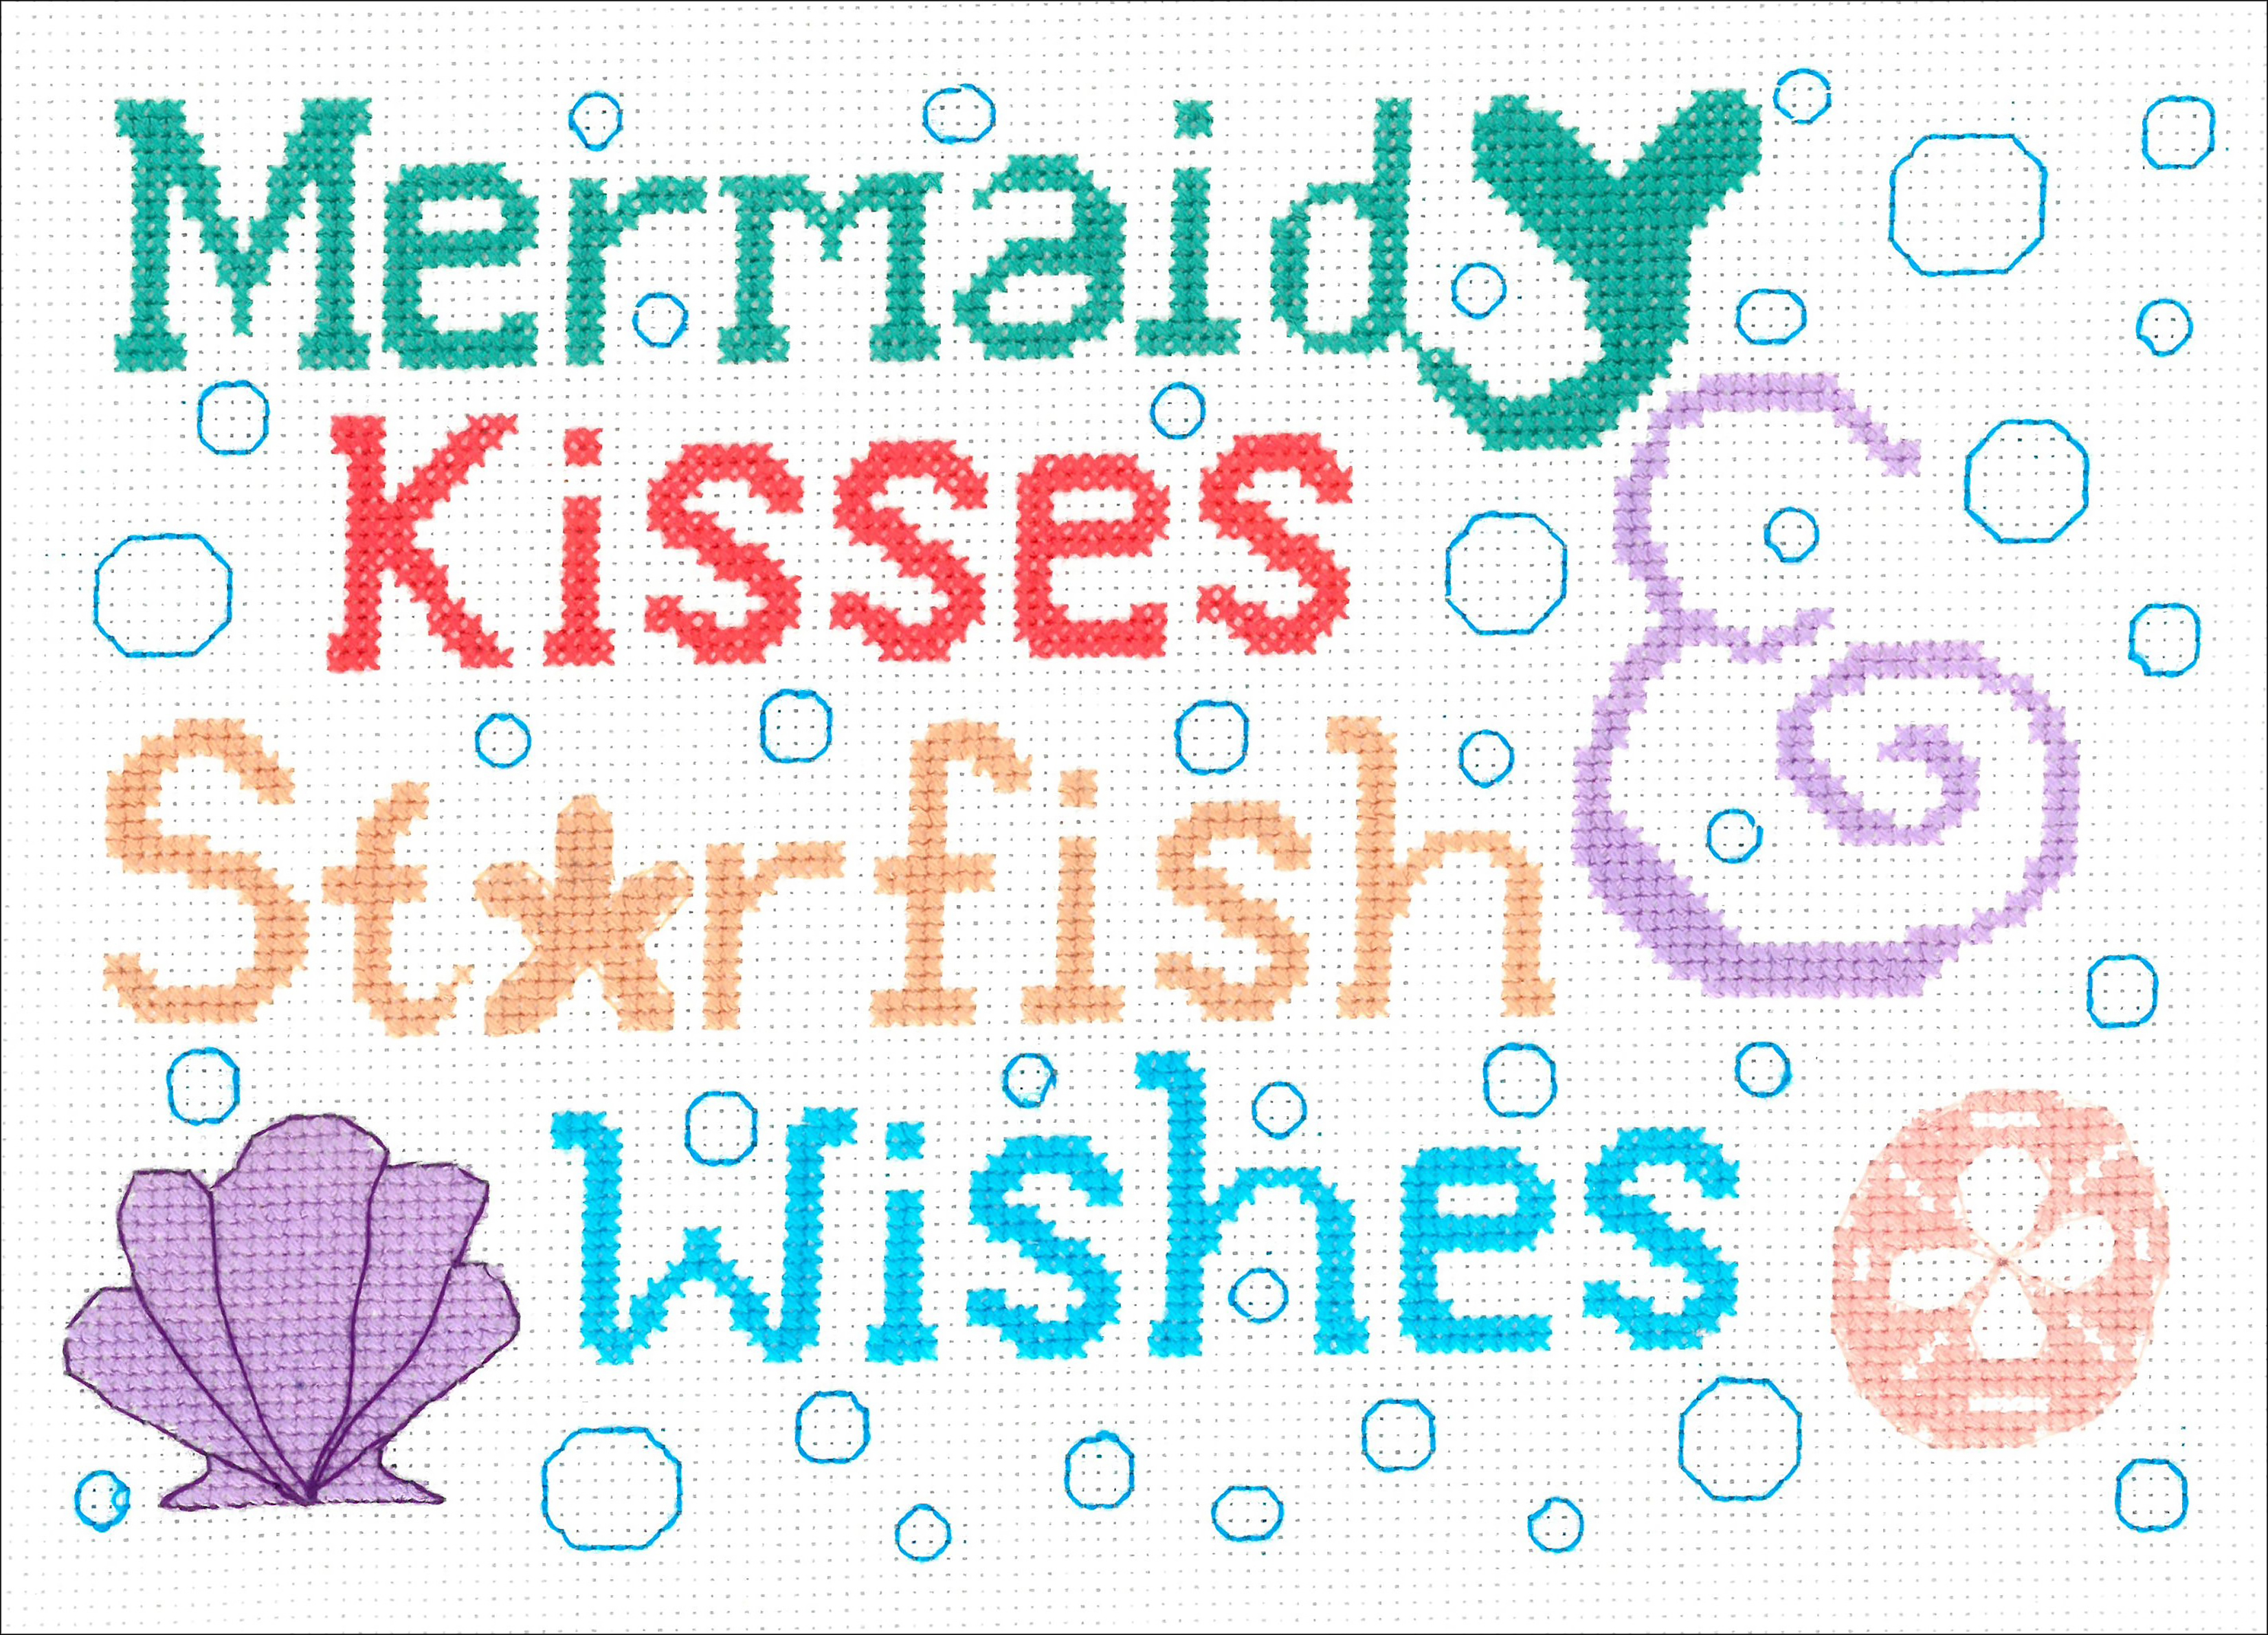 Mermaid Kisses Counted Cross Stitch Kit -  M & R Technologies, I3119